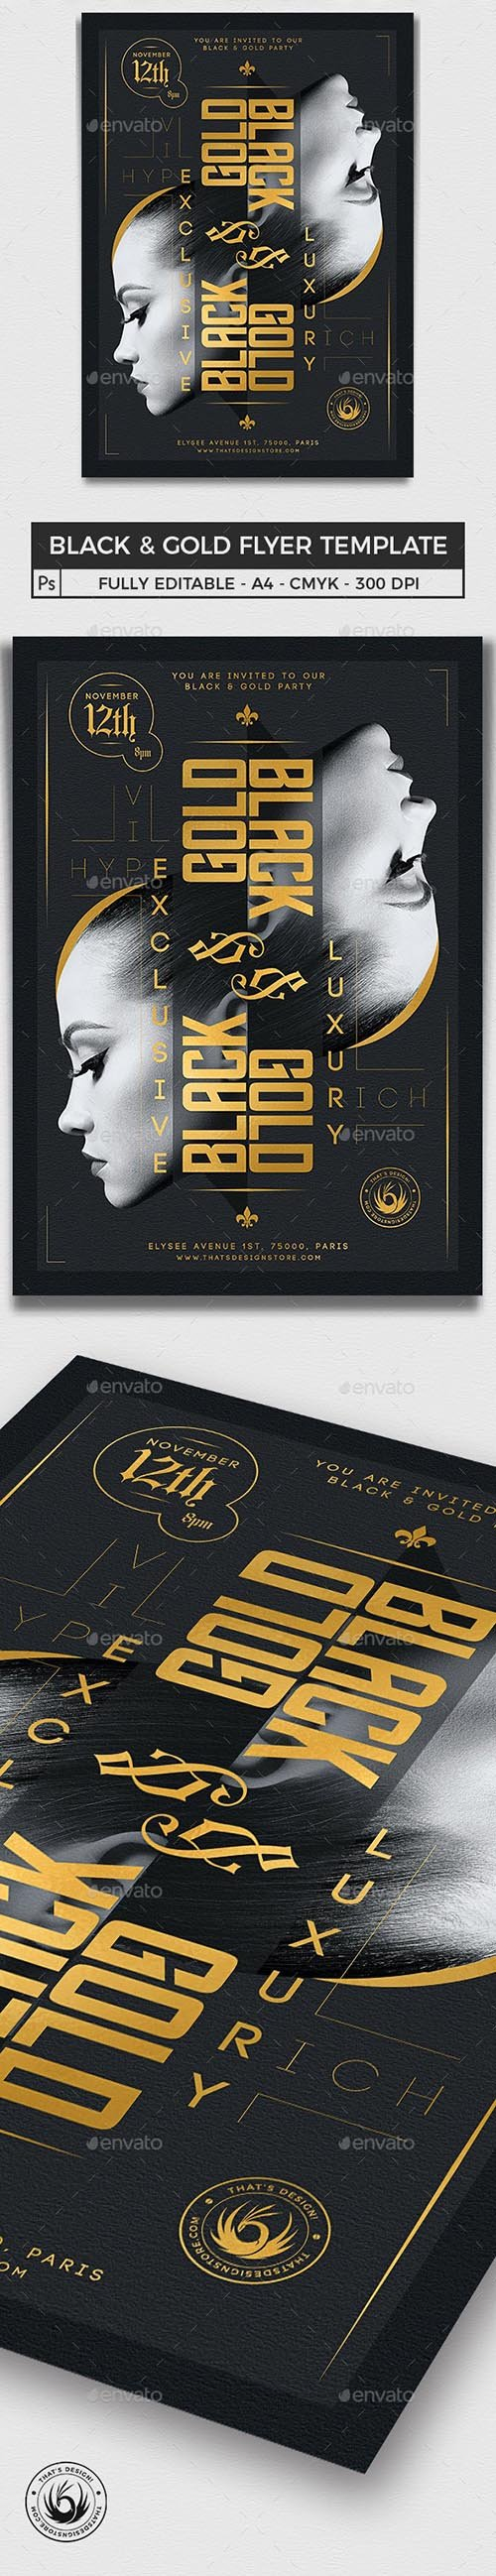 Black and Gold Flyer Template V17 25231950